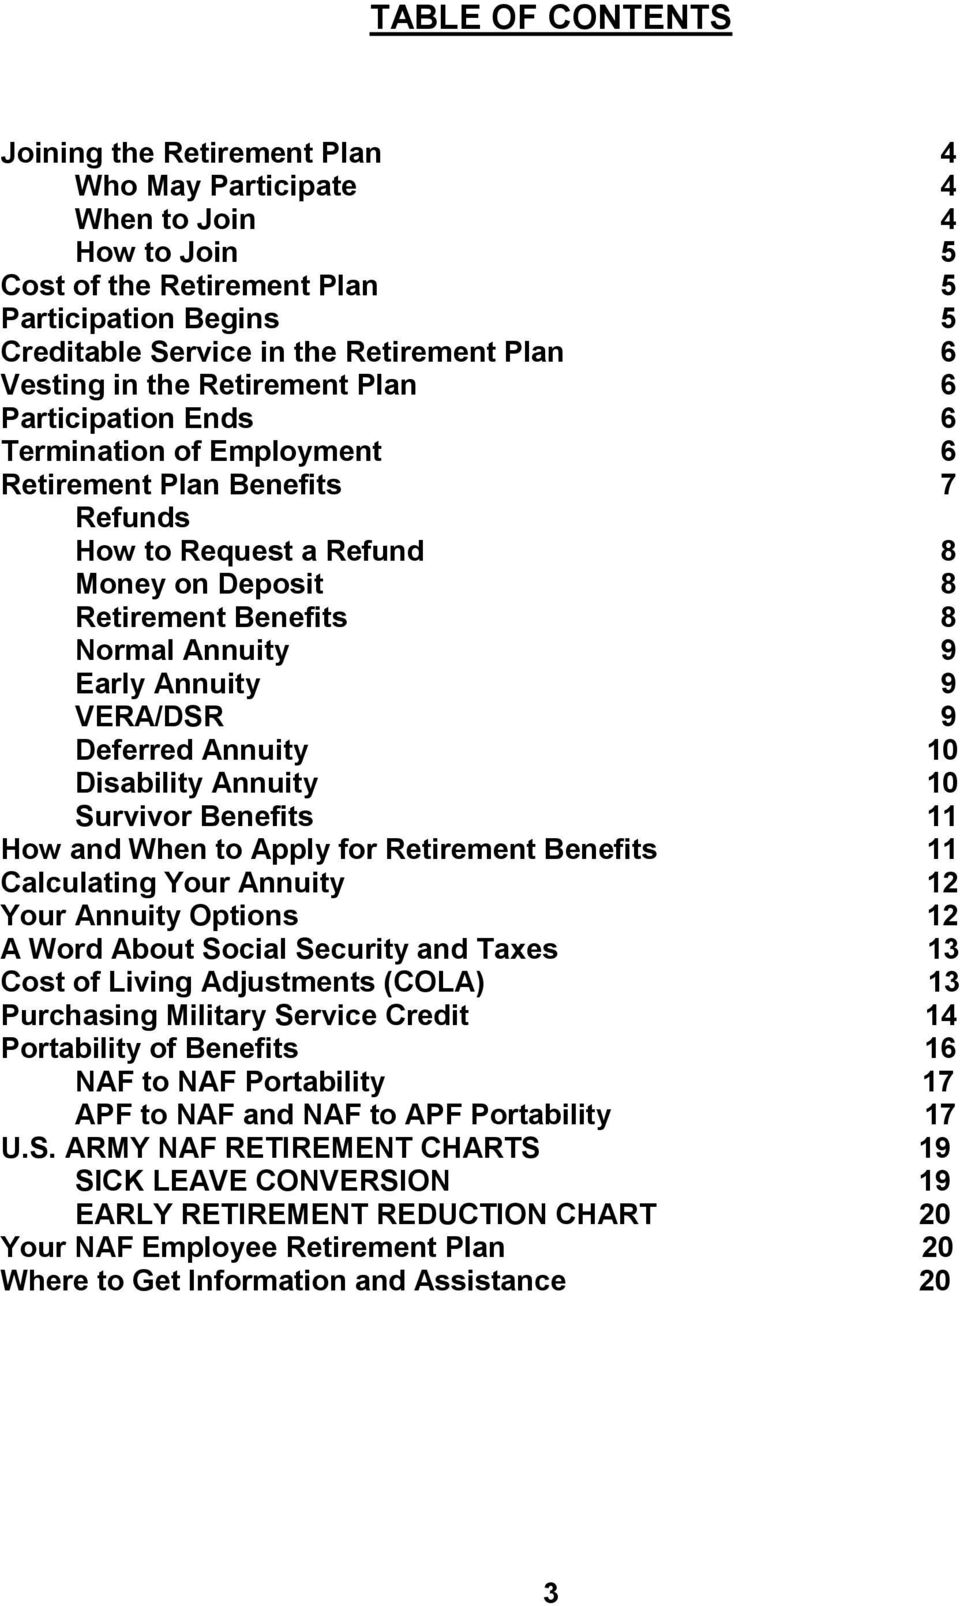 9 Early Annuity 9 VERA/DSR 9 Deferred Annuity 10 Disability Annuity 10 Survivor Benefits 11 How and When to Apply for Retirement Benefits 11 Calculating Your Annuity 12 Your Annuity Options 12 A Word